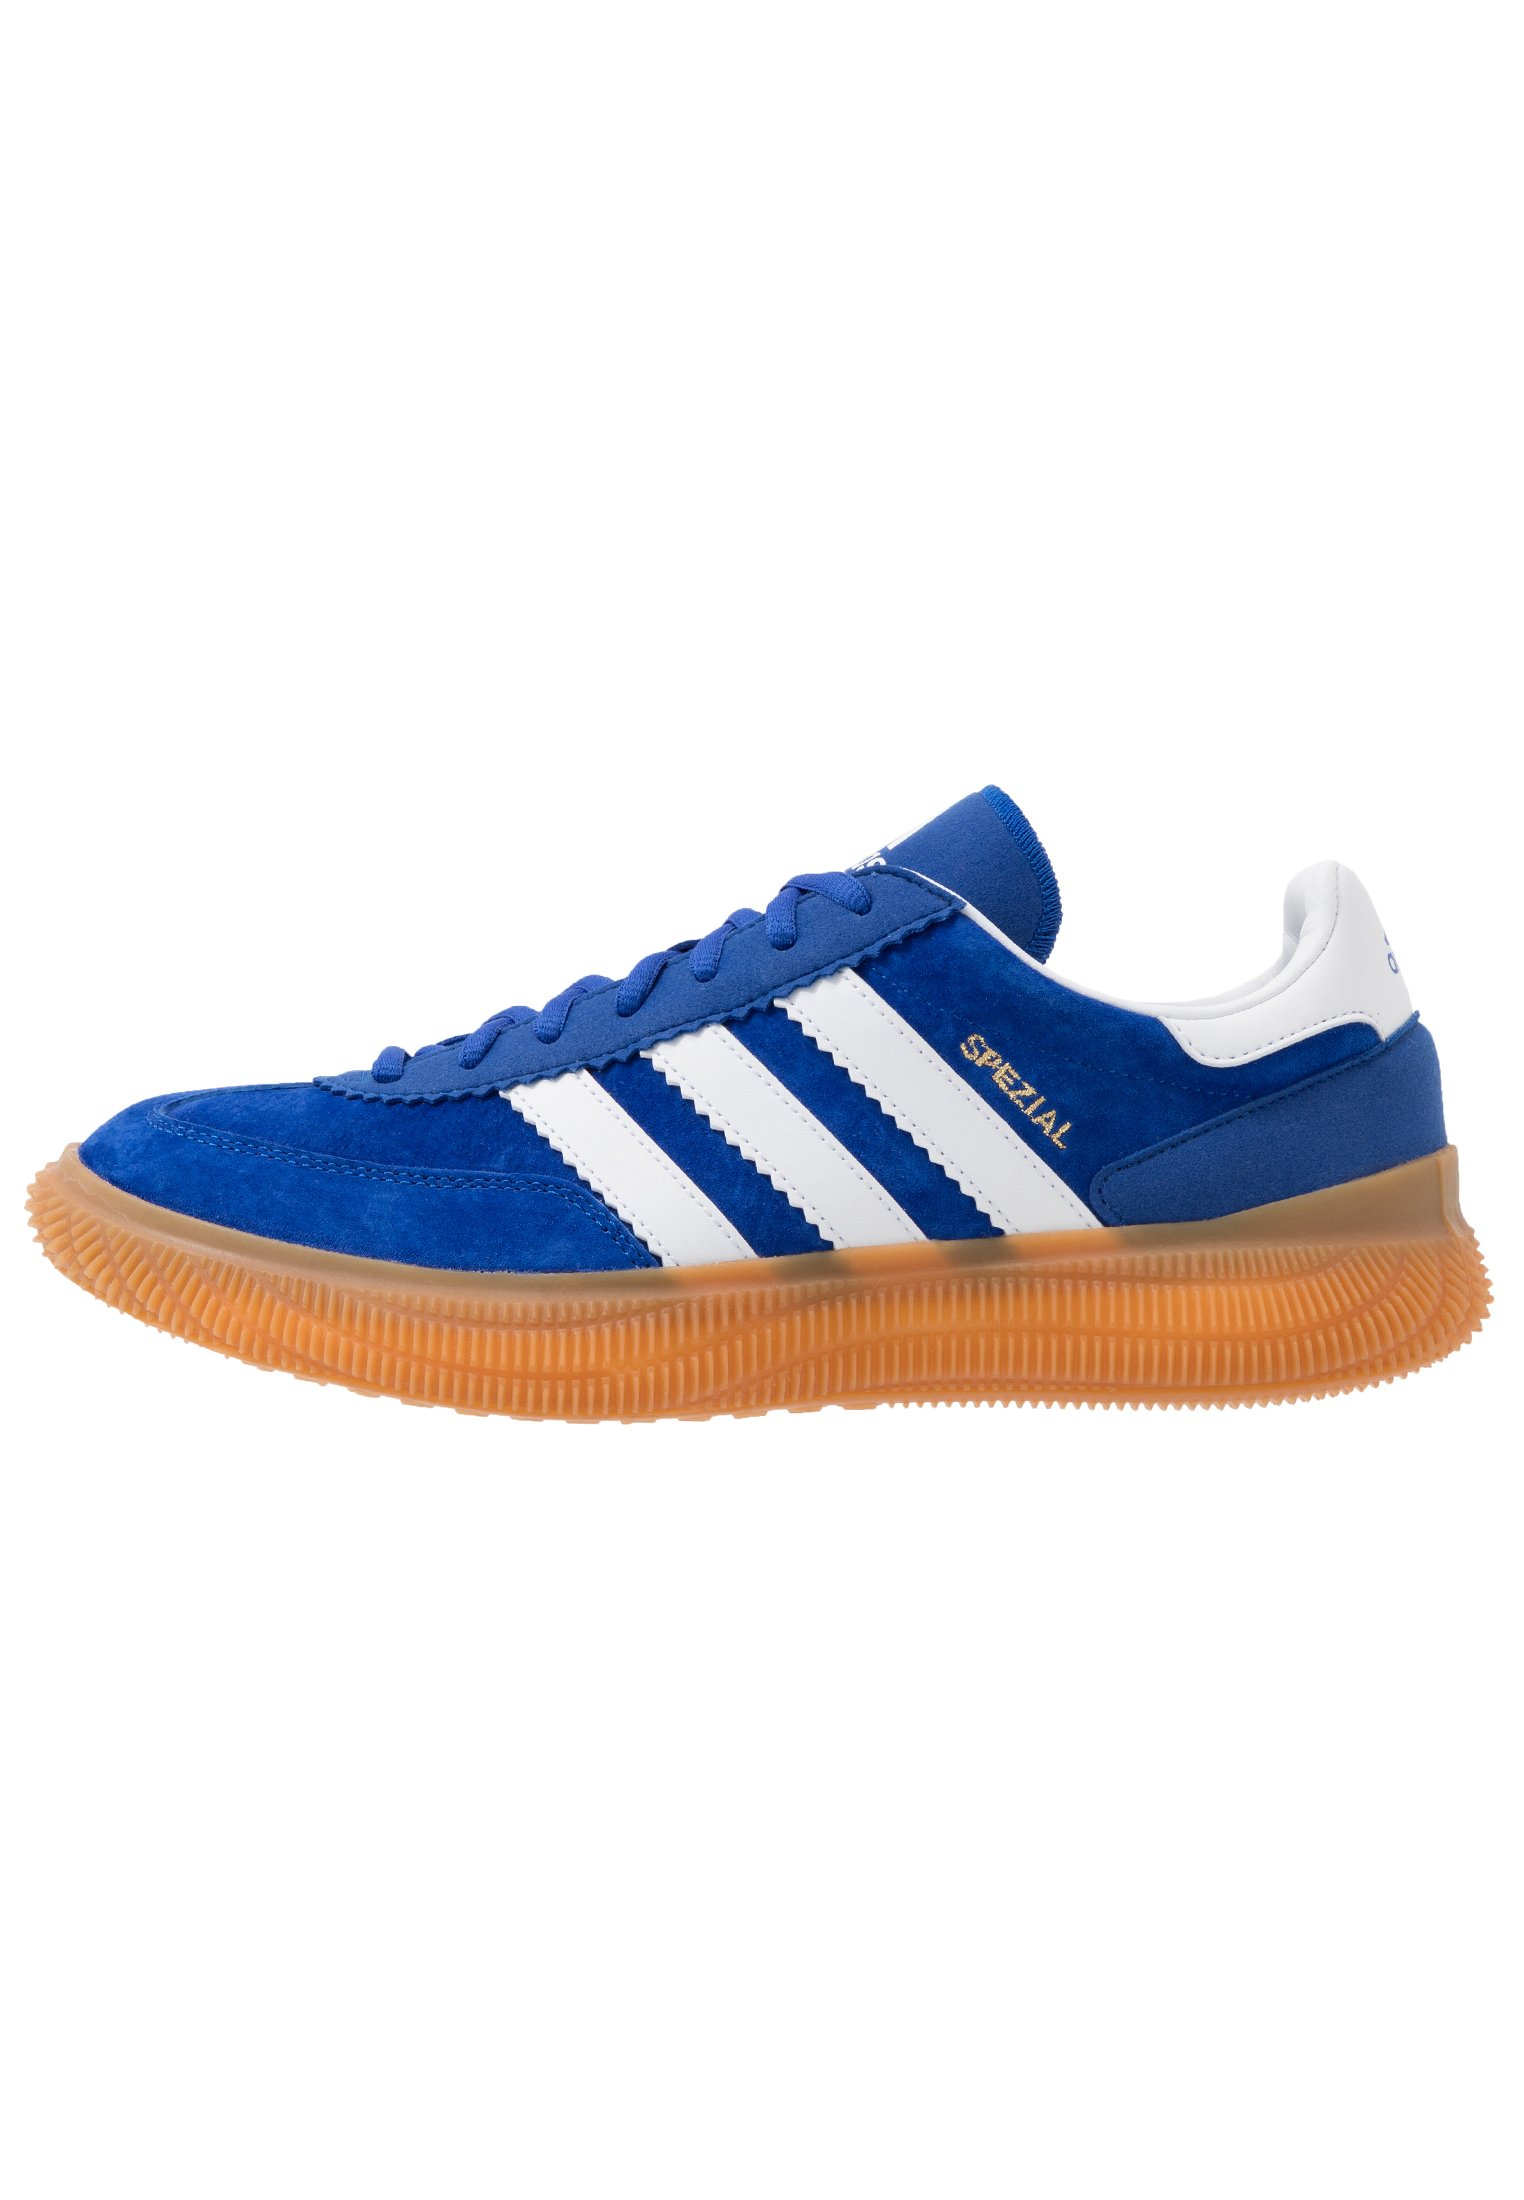 adidas Performance SPEZIAL BOOST Chaussures de handball